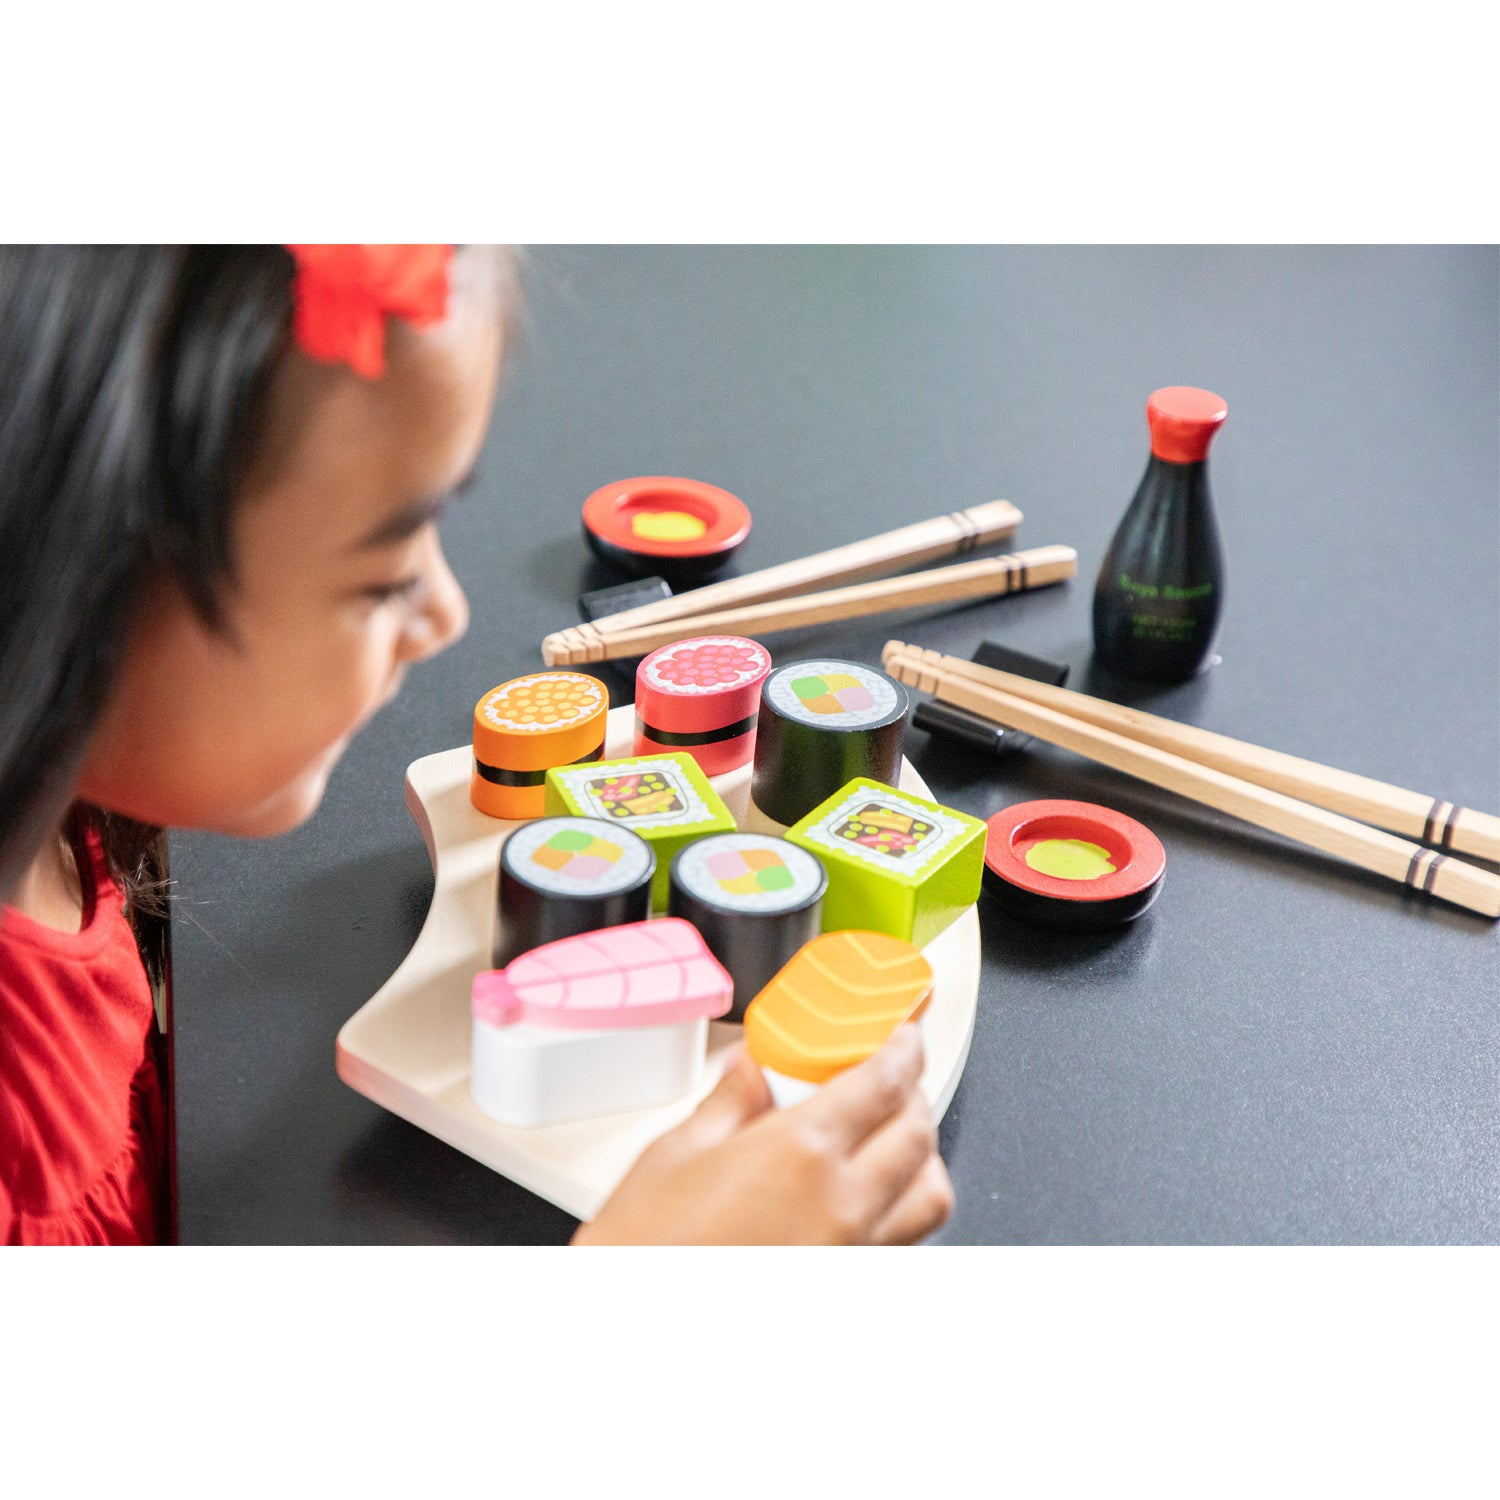 New Classic Toys Sushi Set Buy Play Kitchens Toy Food